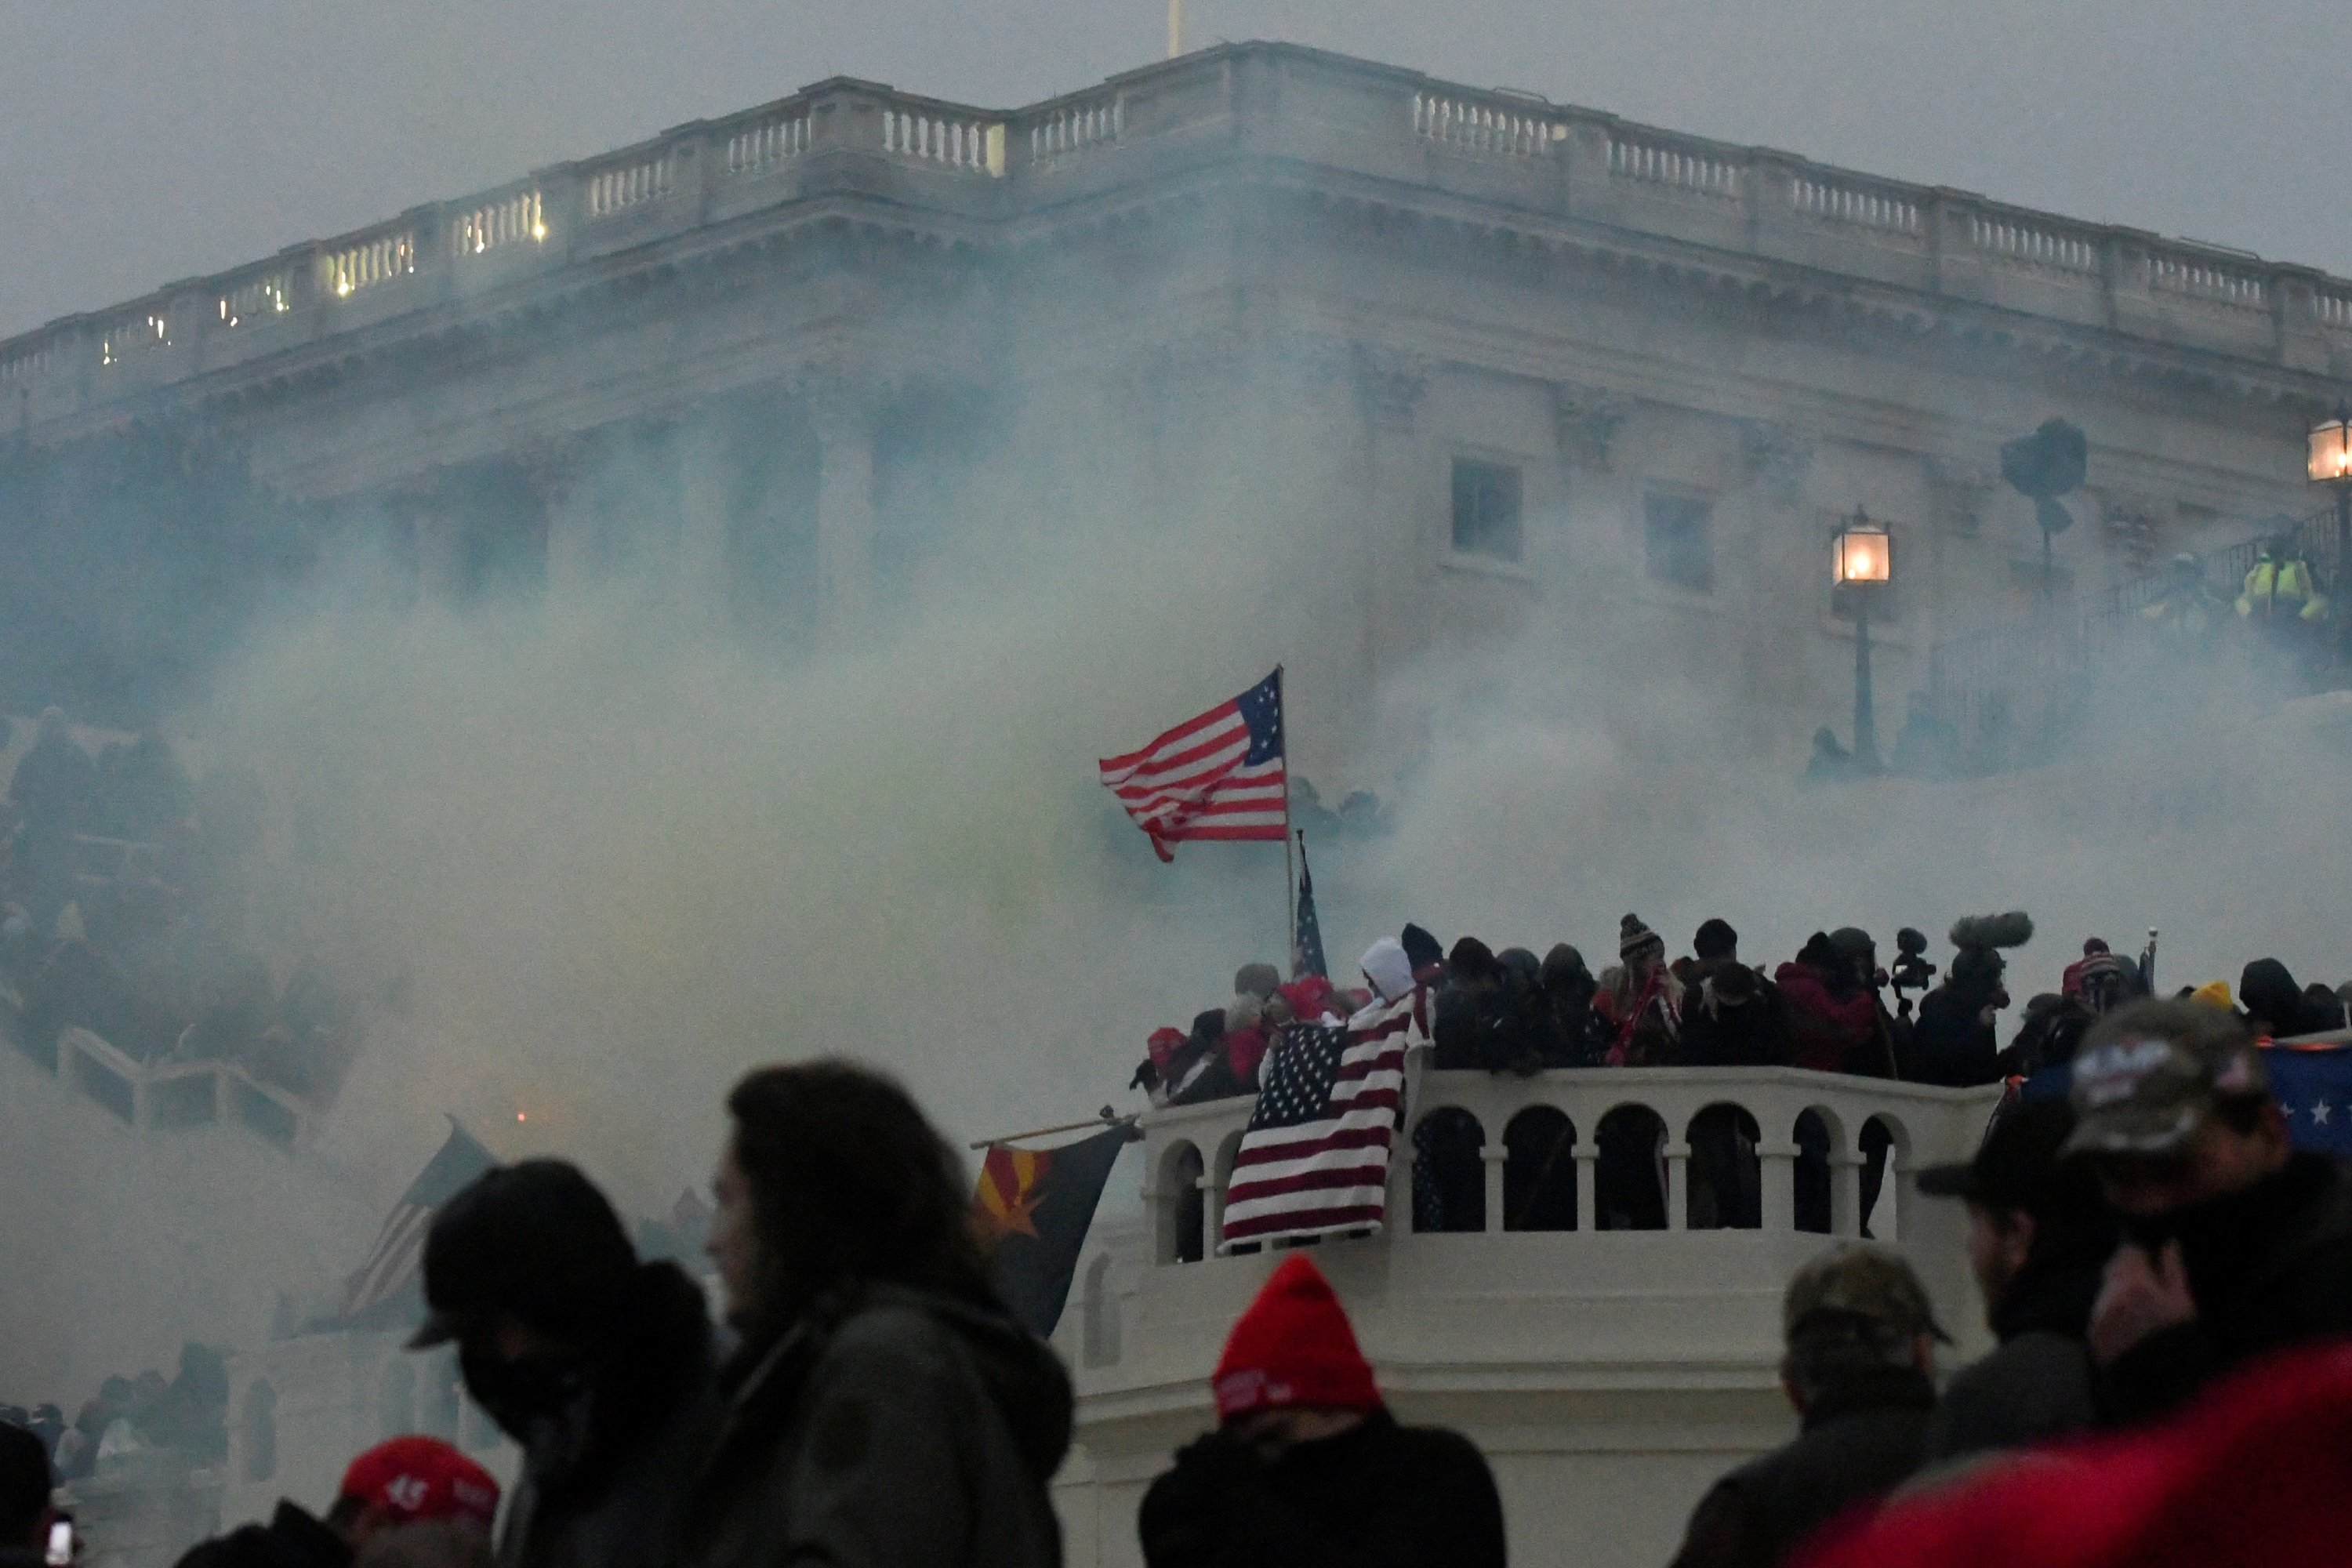 Police clear the U.S. Capitol Building with tear gas as pro-Donald Trump supporters gather outside, Washington, D.C., the U.S., Jan. 6, 2021. (Reuters Photo)